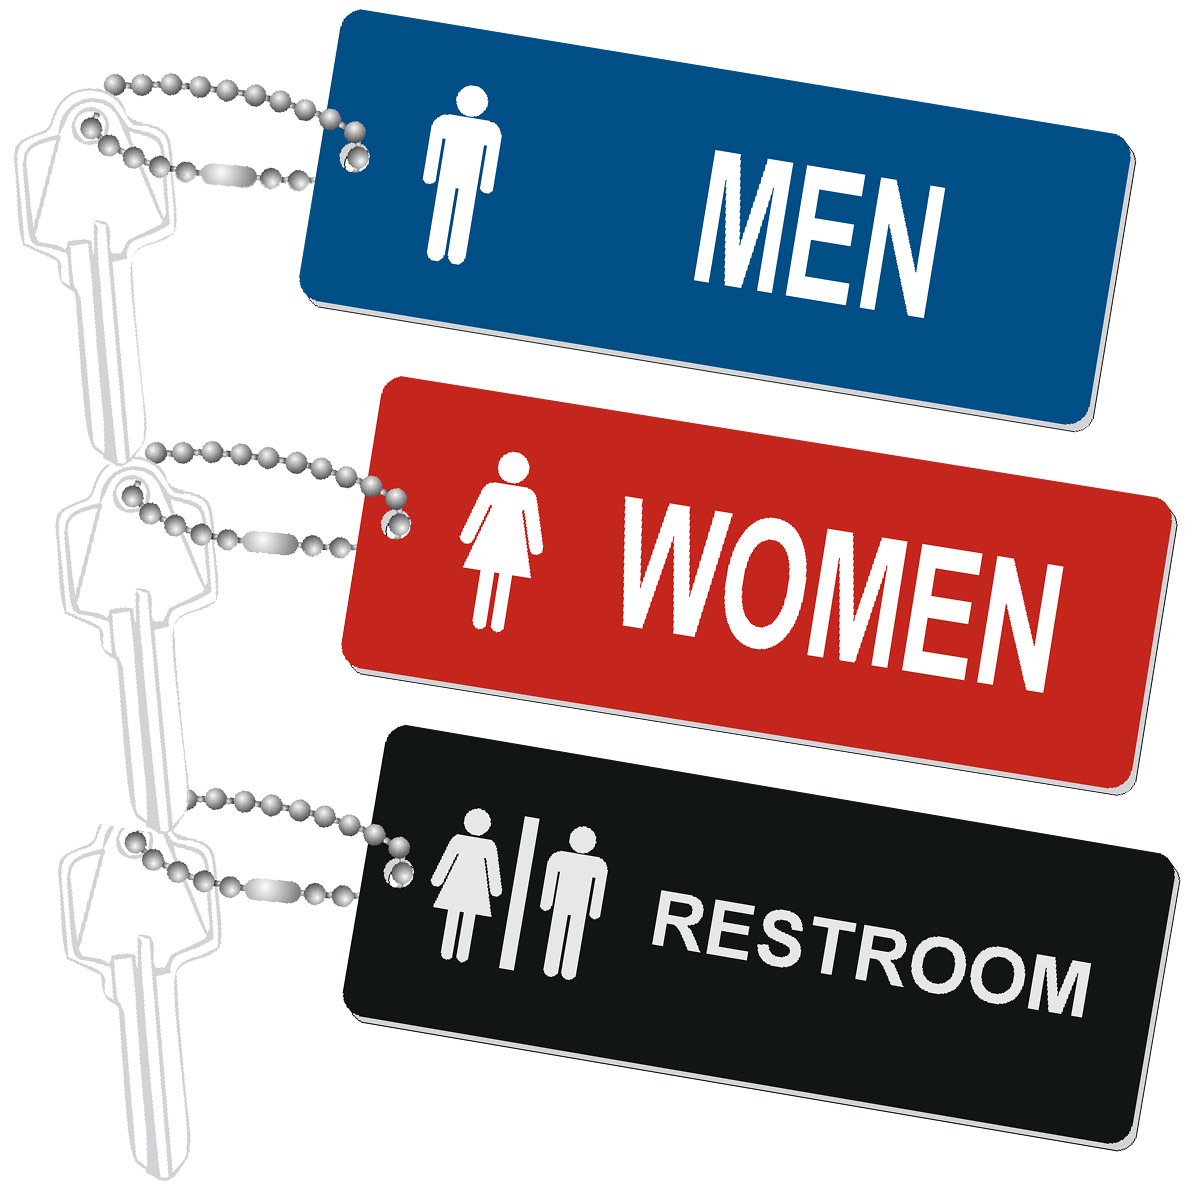 Standard Rectangle Restroom Key Tags